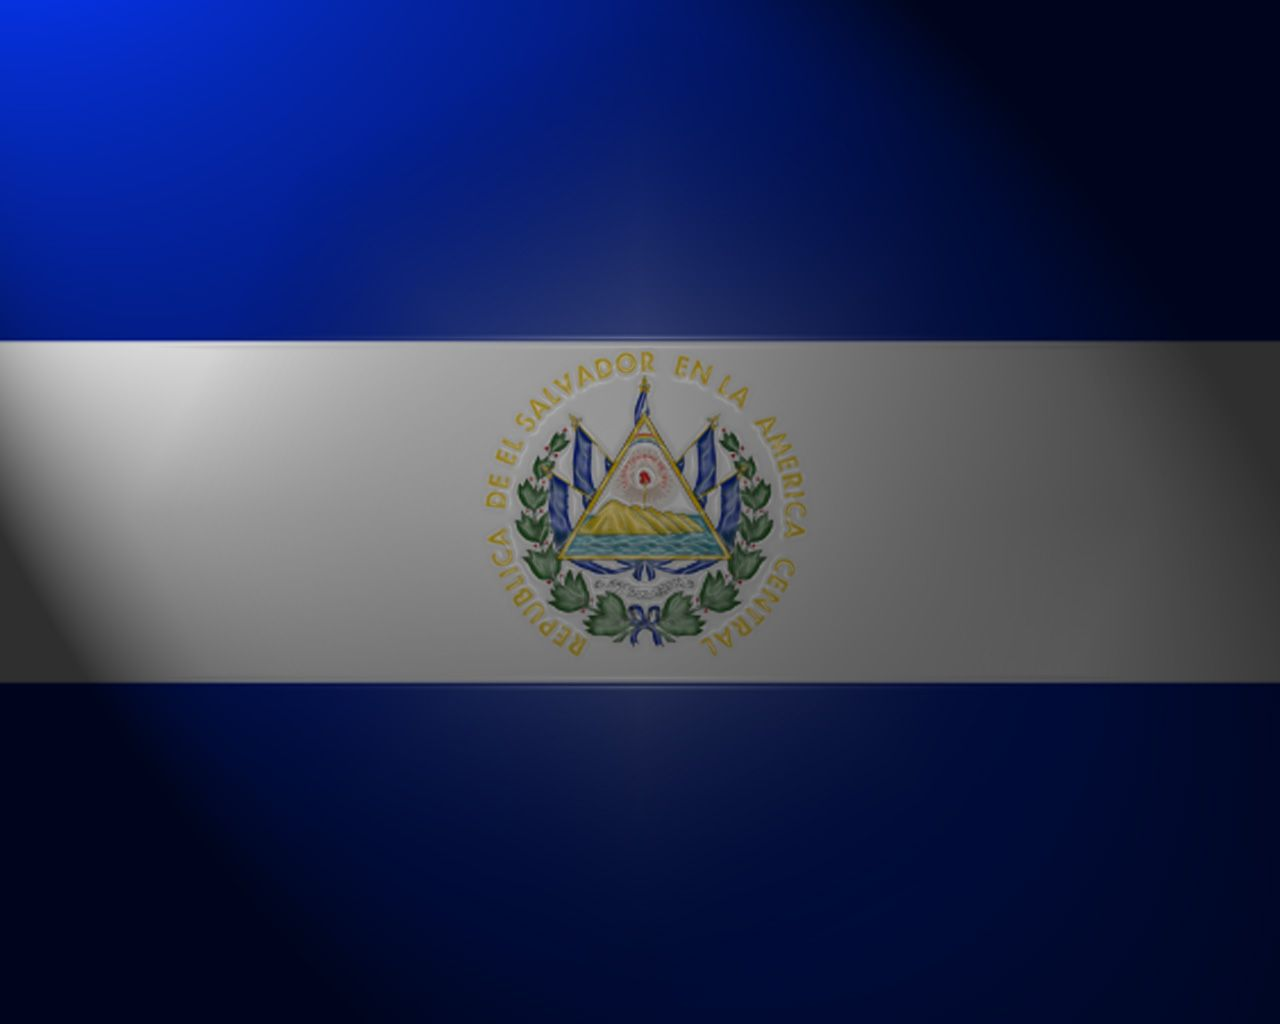 Free Download El Salvador Flag Wallpapers 1280x1024 For Your